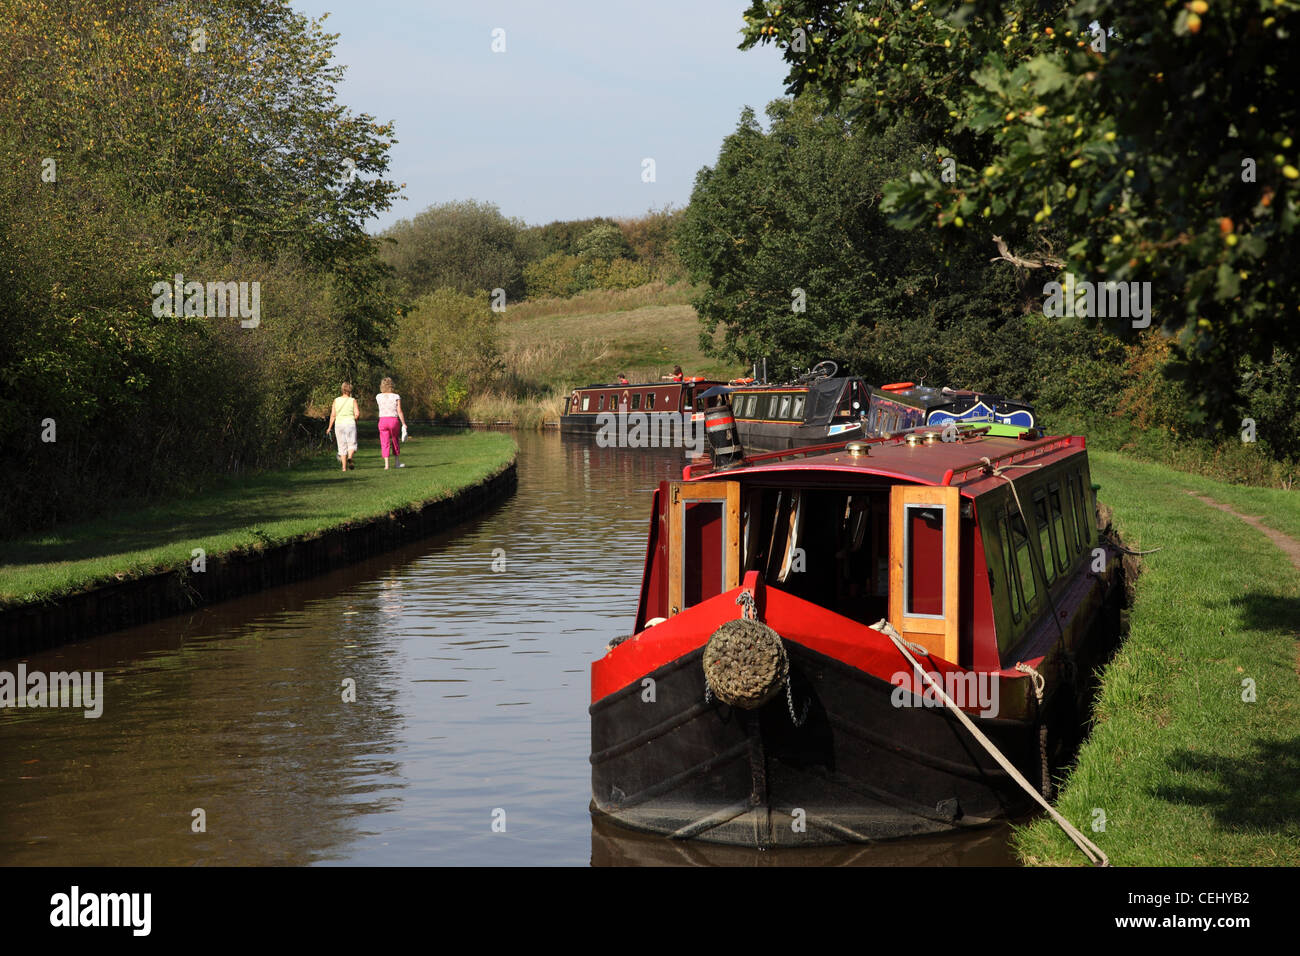 Canal boats on the Llangollen canal near Whitchurch, Shropshire UK, with people walking away from camera on the Stock Photo